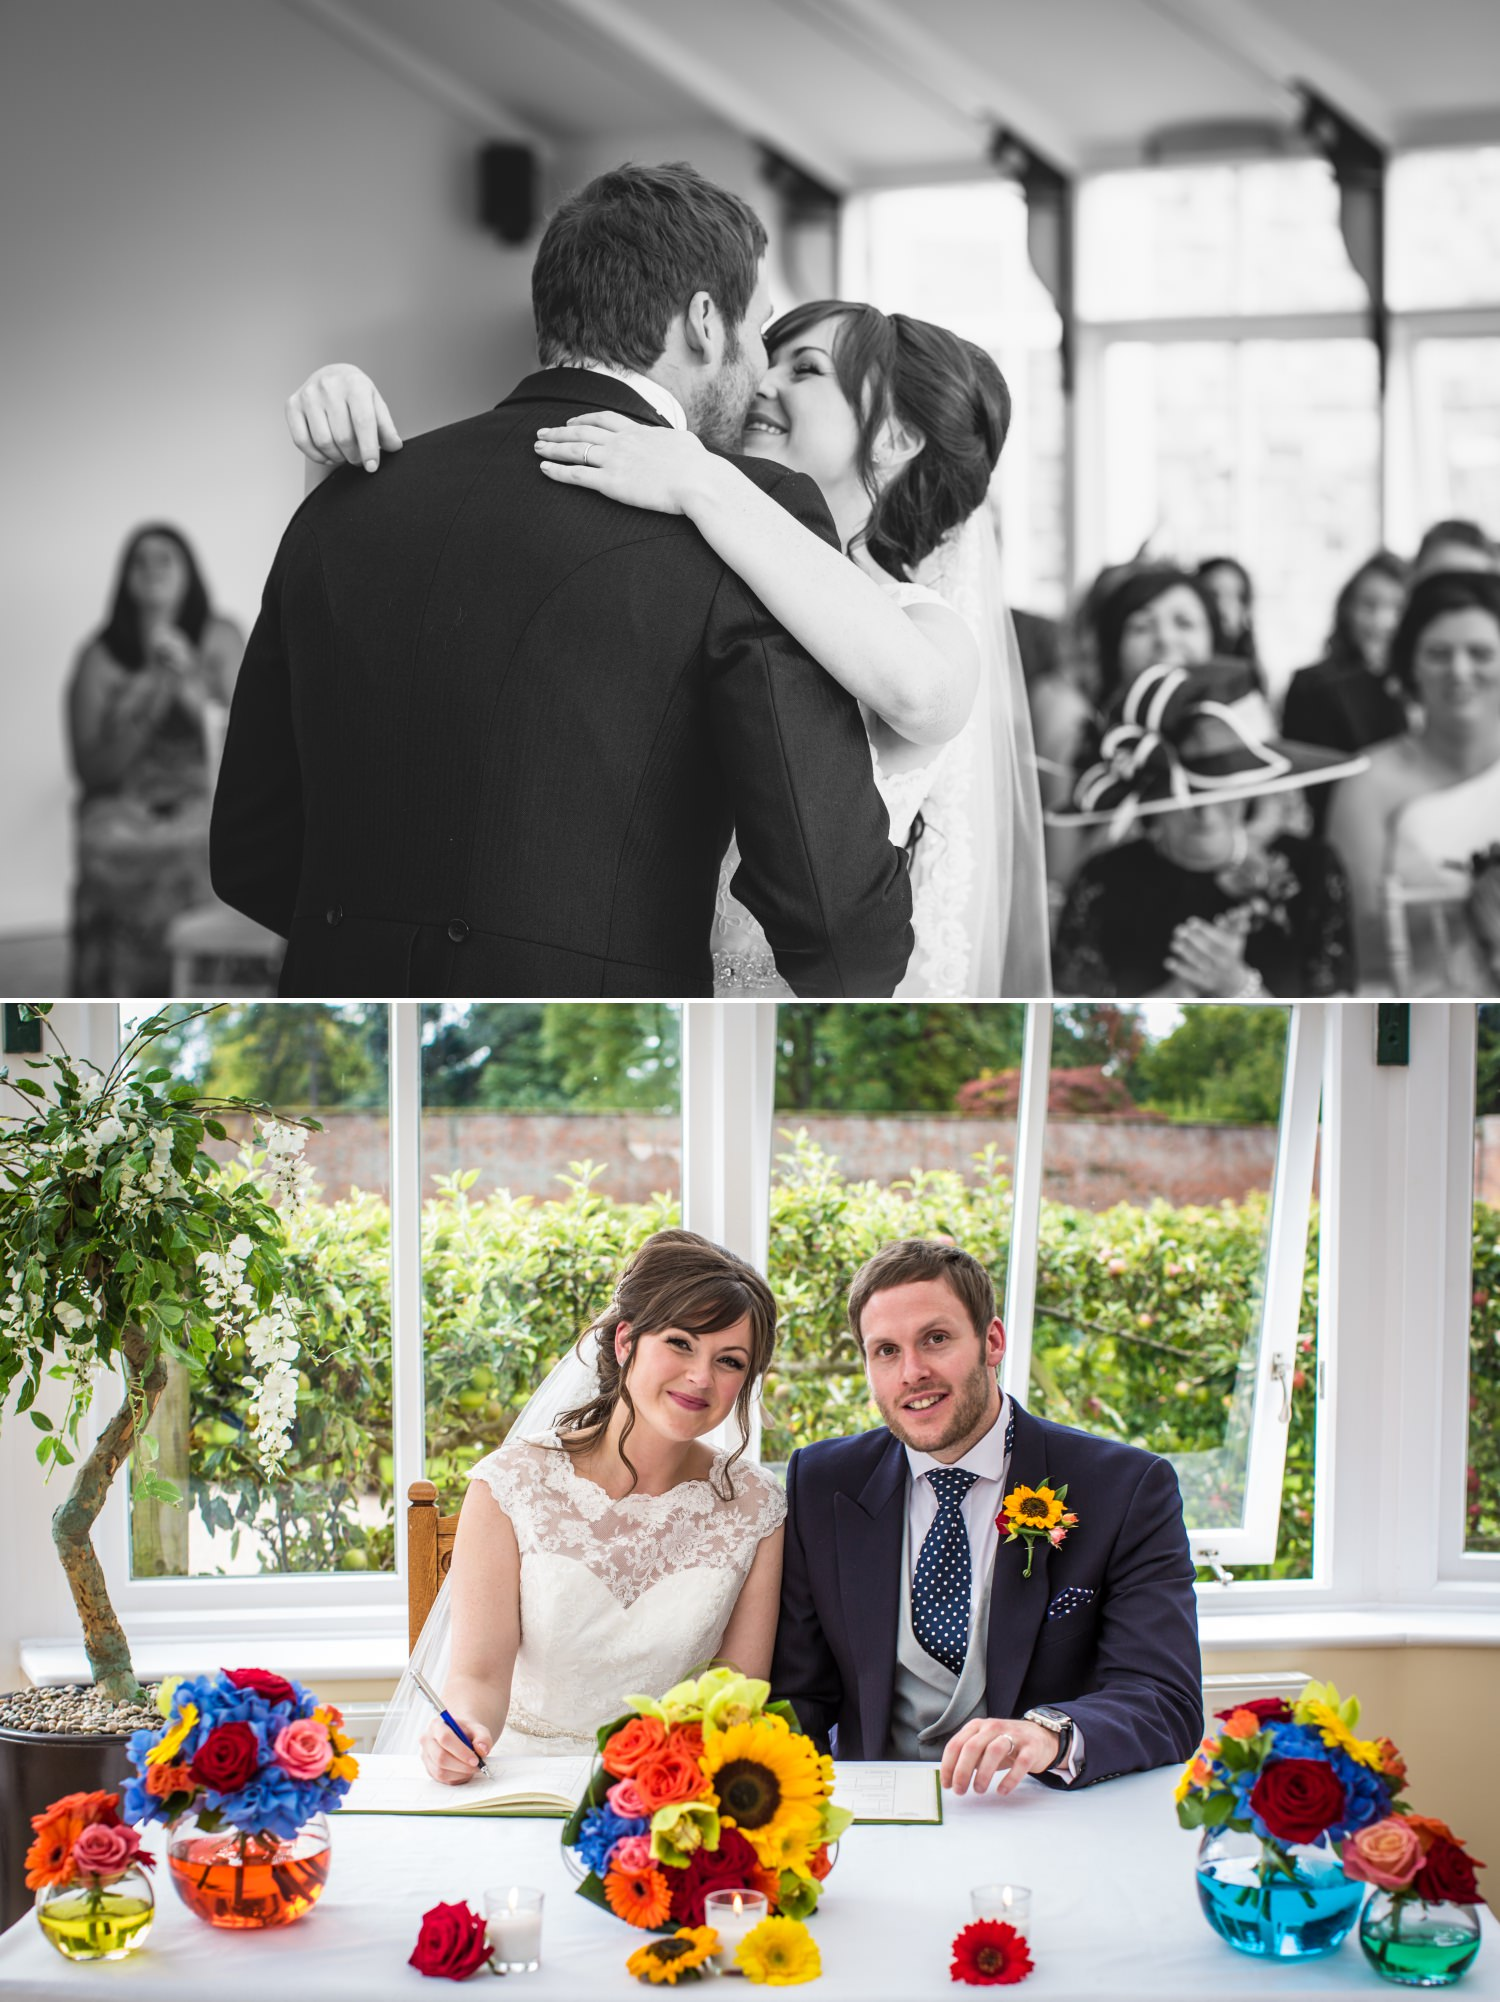 First kiss and signing of the register wedding photography at Cheshire wedding venue Combermere Abbey